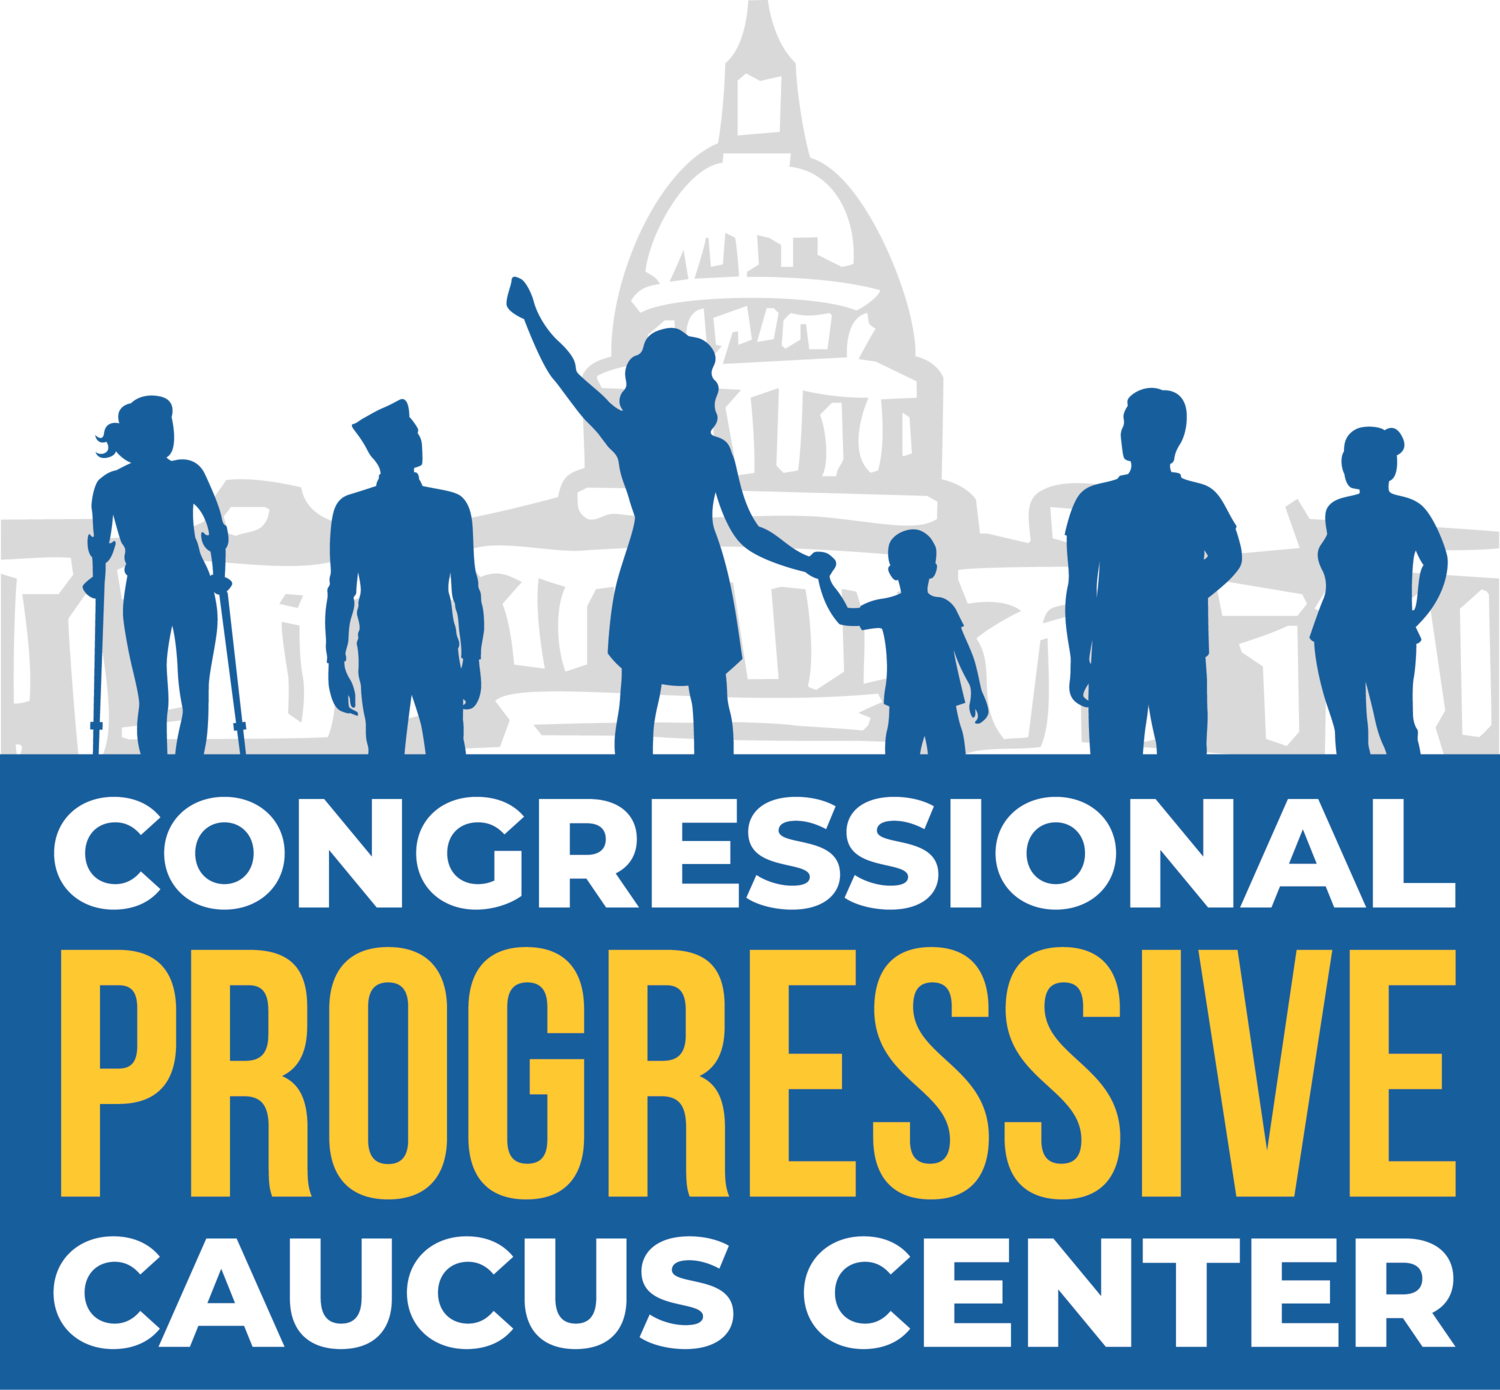 Progressive Caucus Center